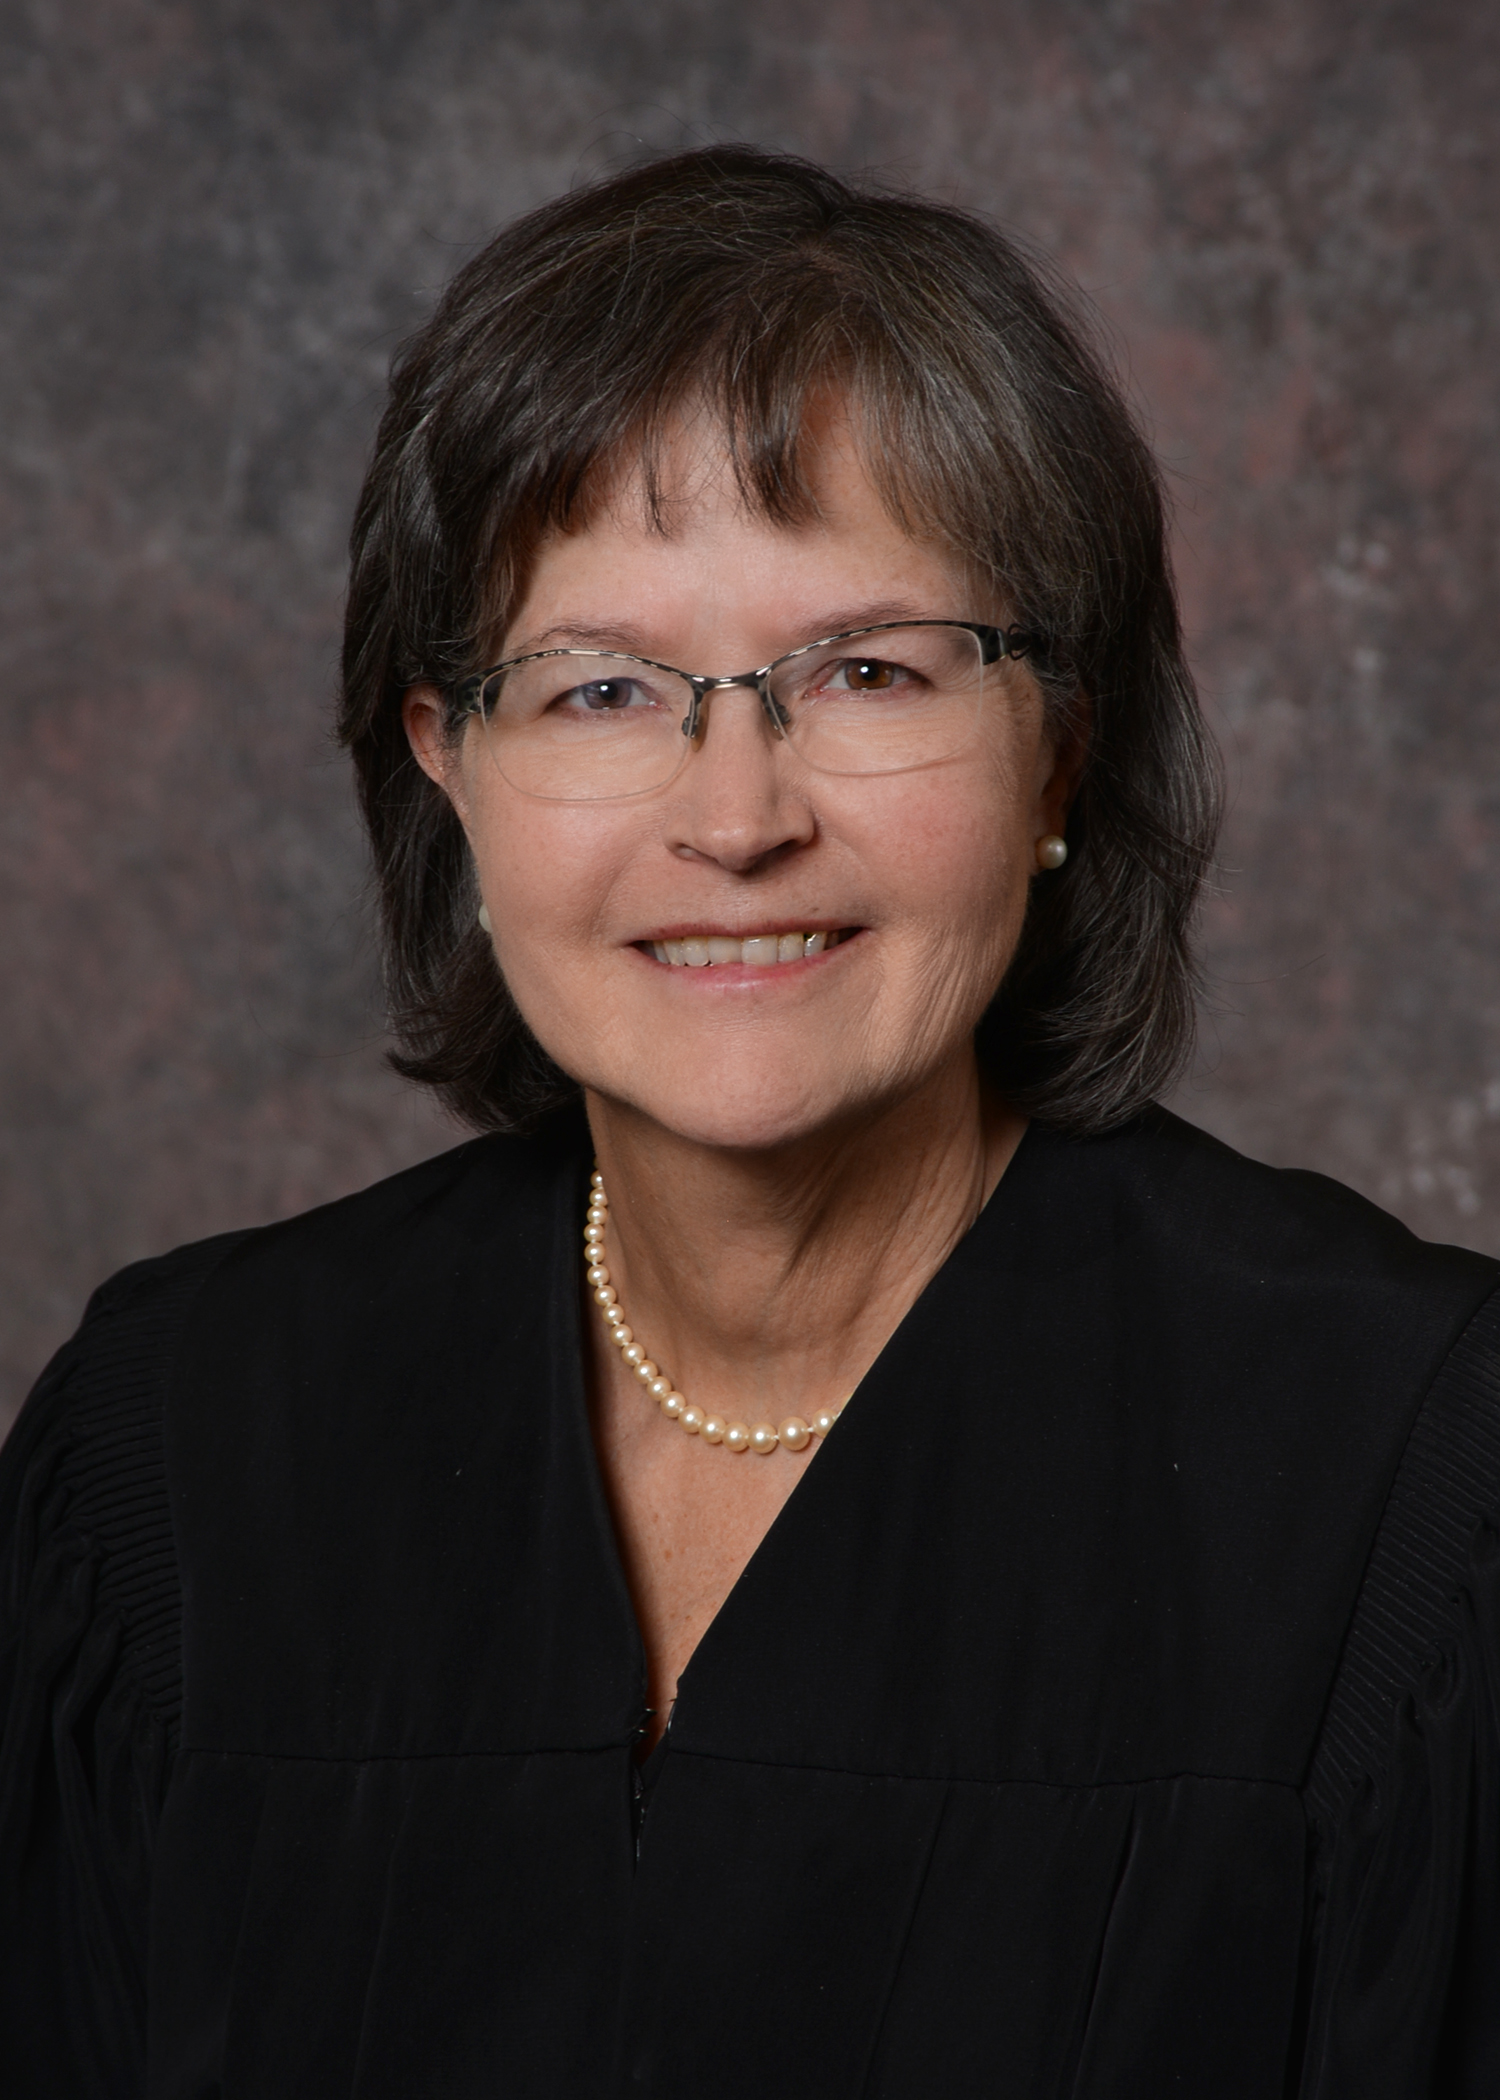 Judge Shawn M. Bartsh